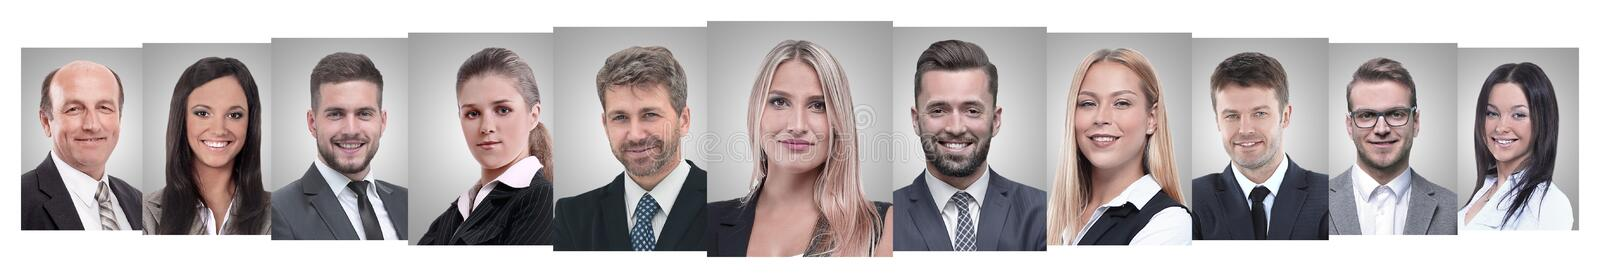 Panoramic collage of portraits of successful business people stock image